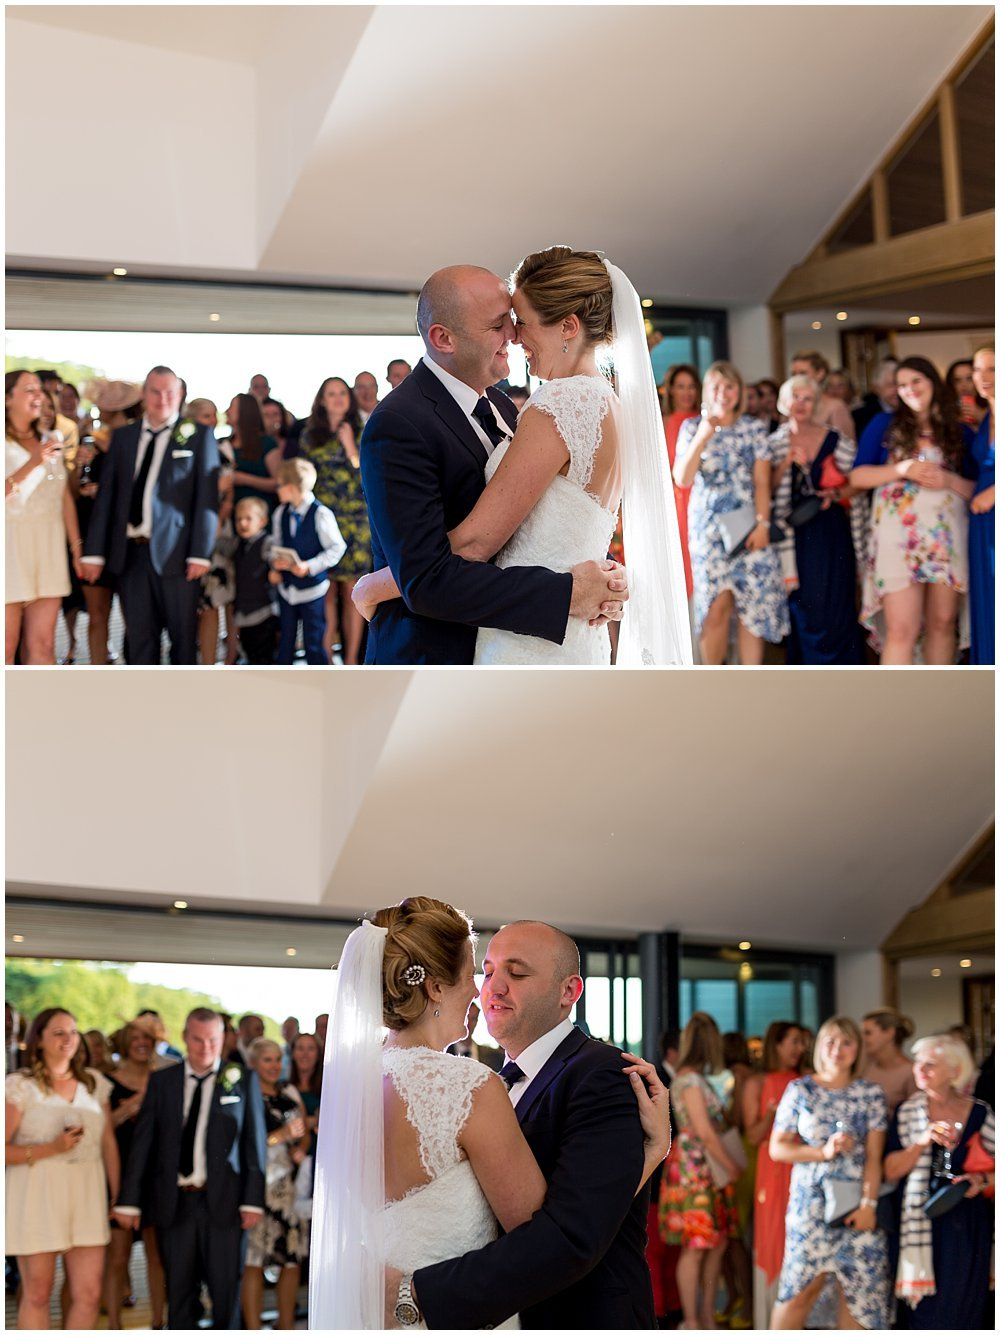 AMY AND DUNCAN NORWICH CATHEDRAL AND THE BOATHOUSE WEDDING - NORWICH AND NORFOLK WEDDING PHOTOGRAPHER 60